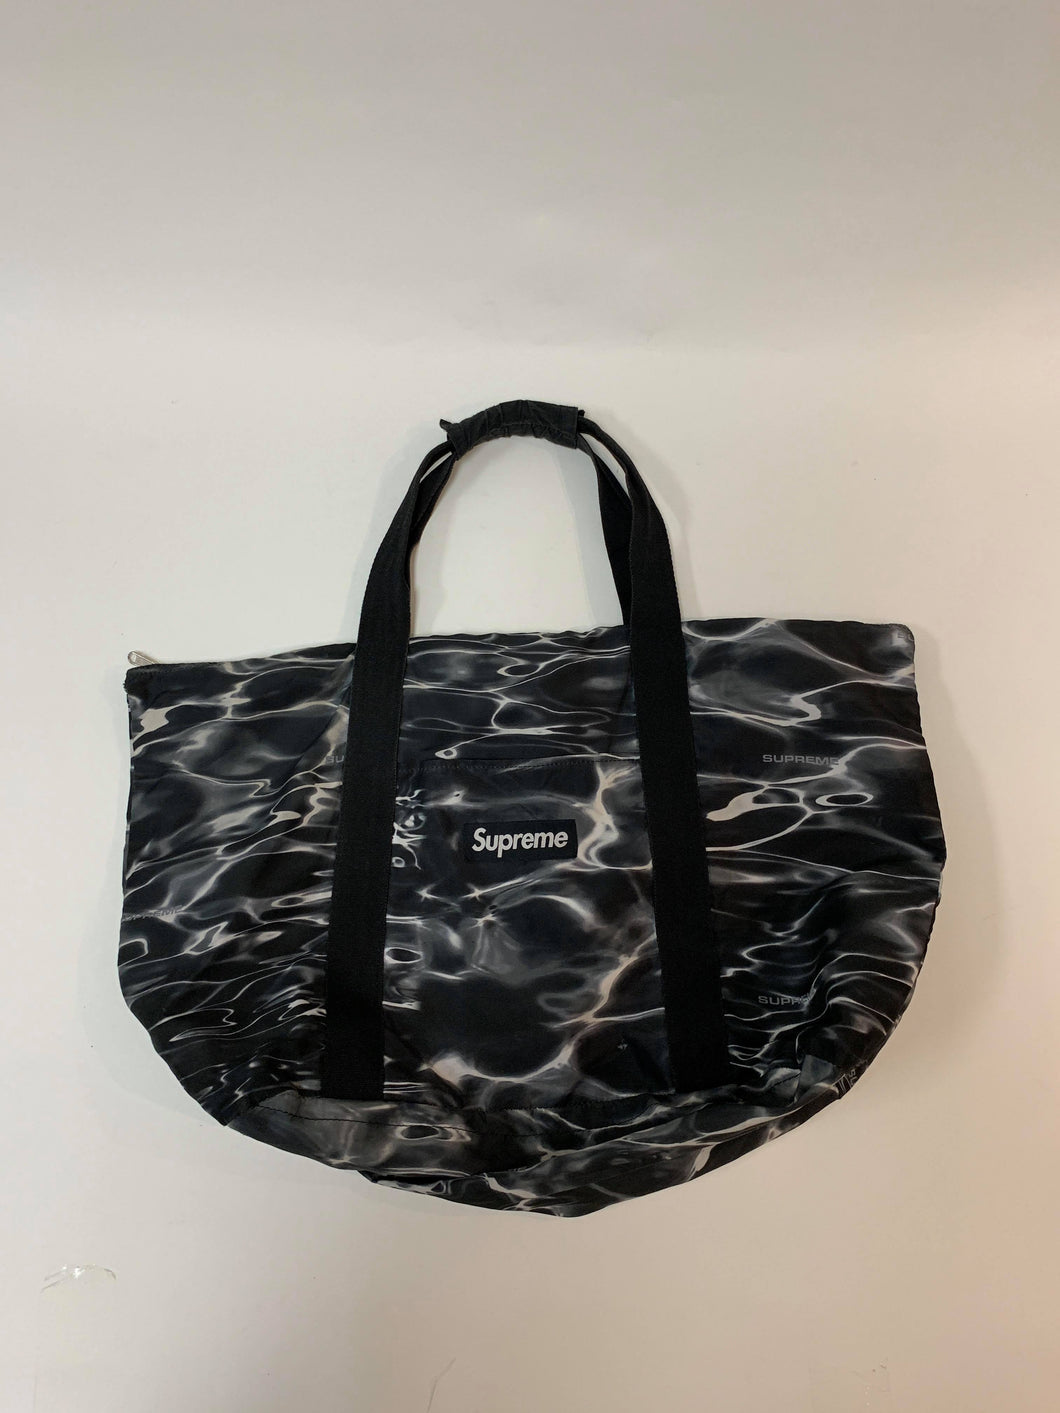 Supreme Waves Totebag